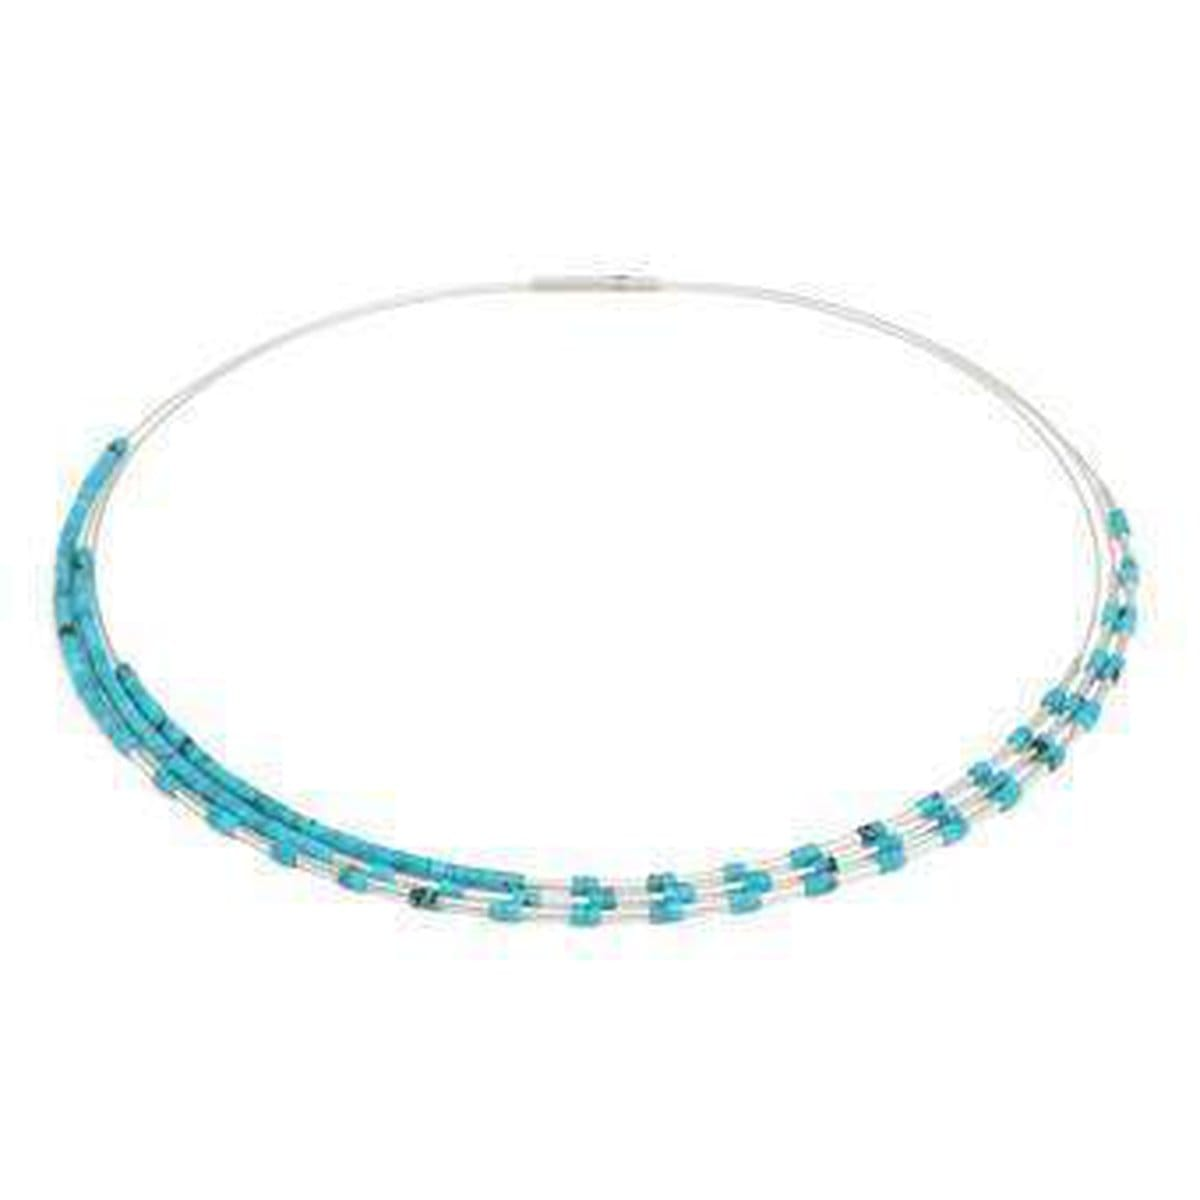 Clea Turquoise Necklace - 85375254-Bernd Wolf-Renee Taylor Gallery